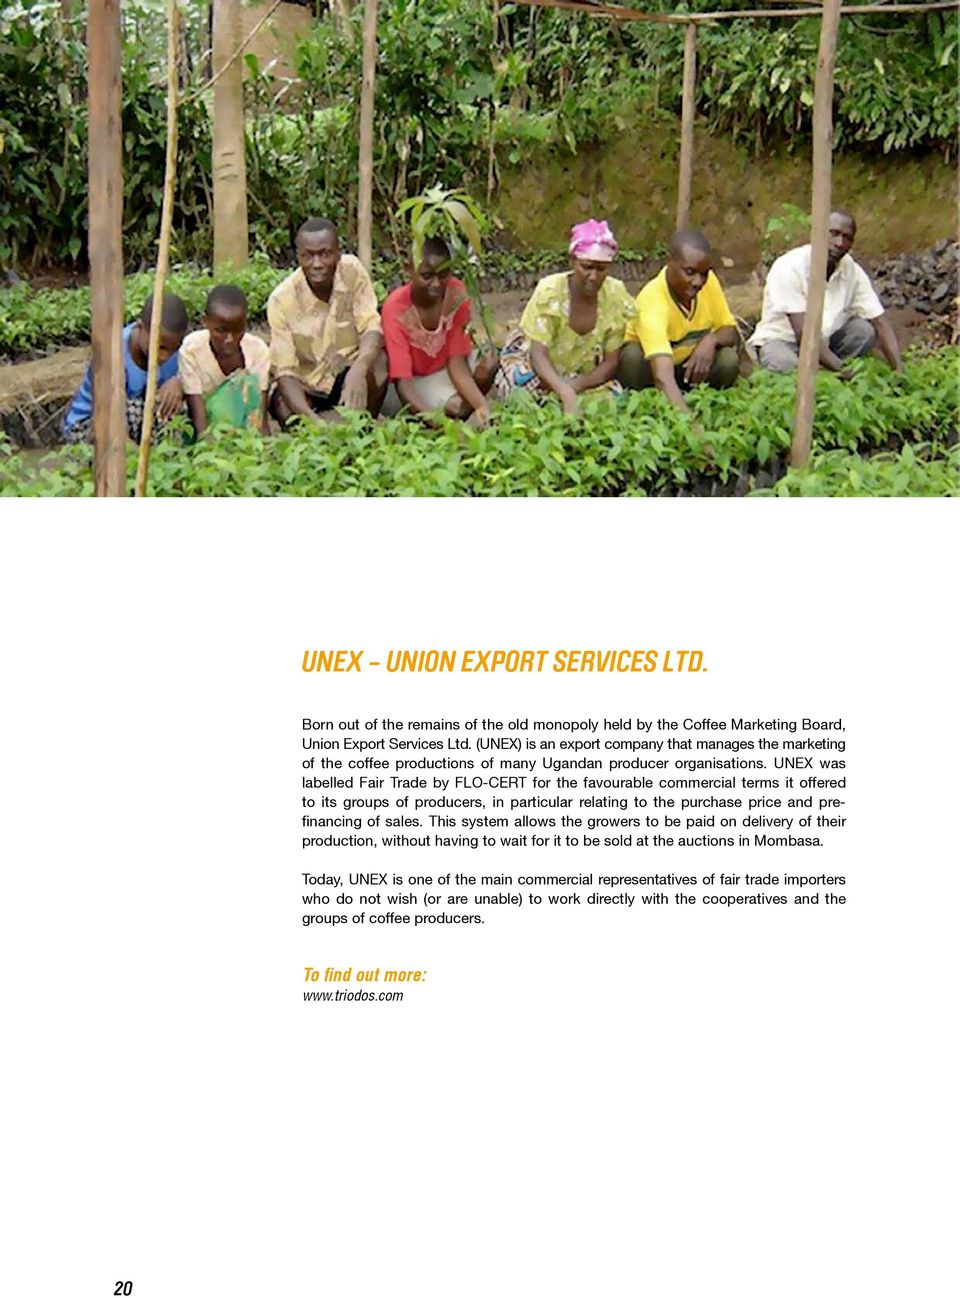 UNEX was labelled Fair Trade by FLO-CERT for the favourable commercial terms it offered to its groups of producers, in particular relating to the purchase price and prefinancing of sales.